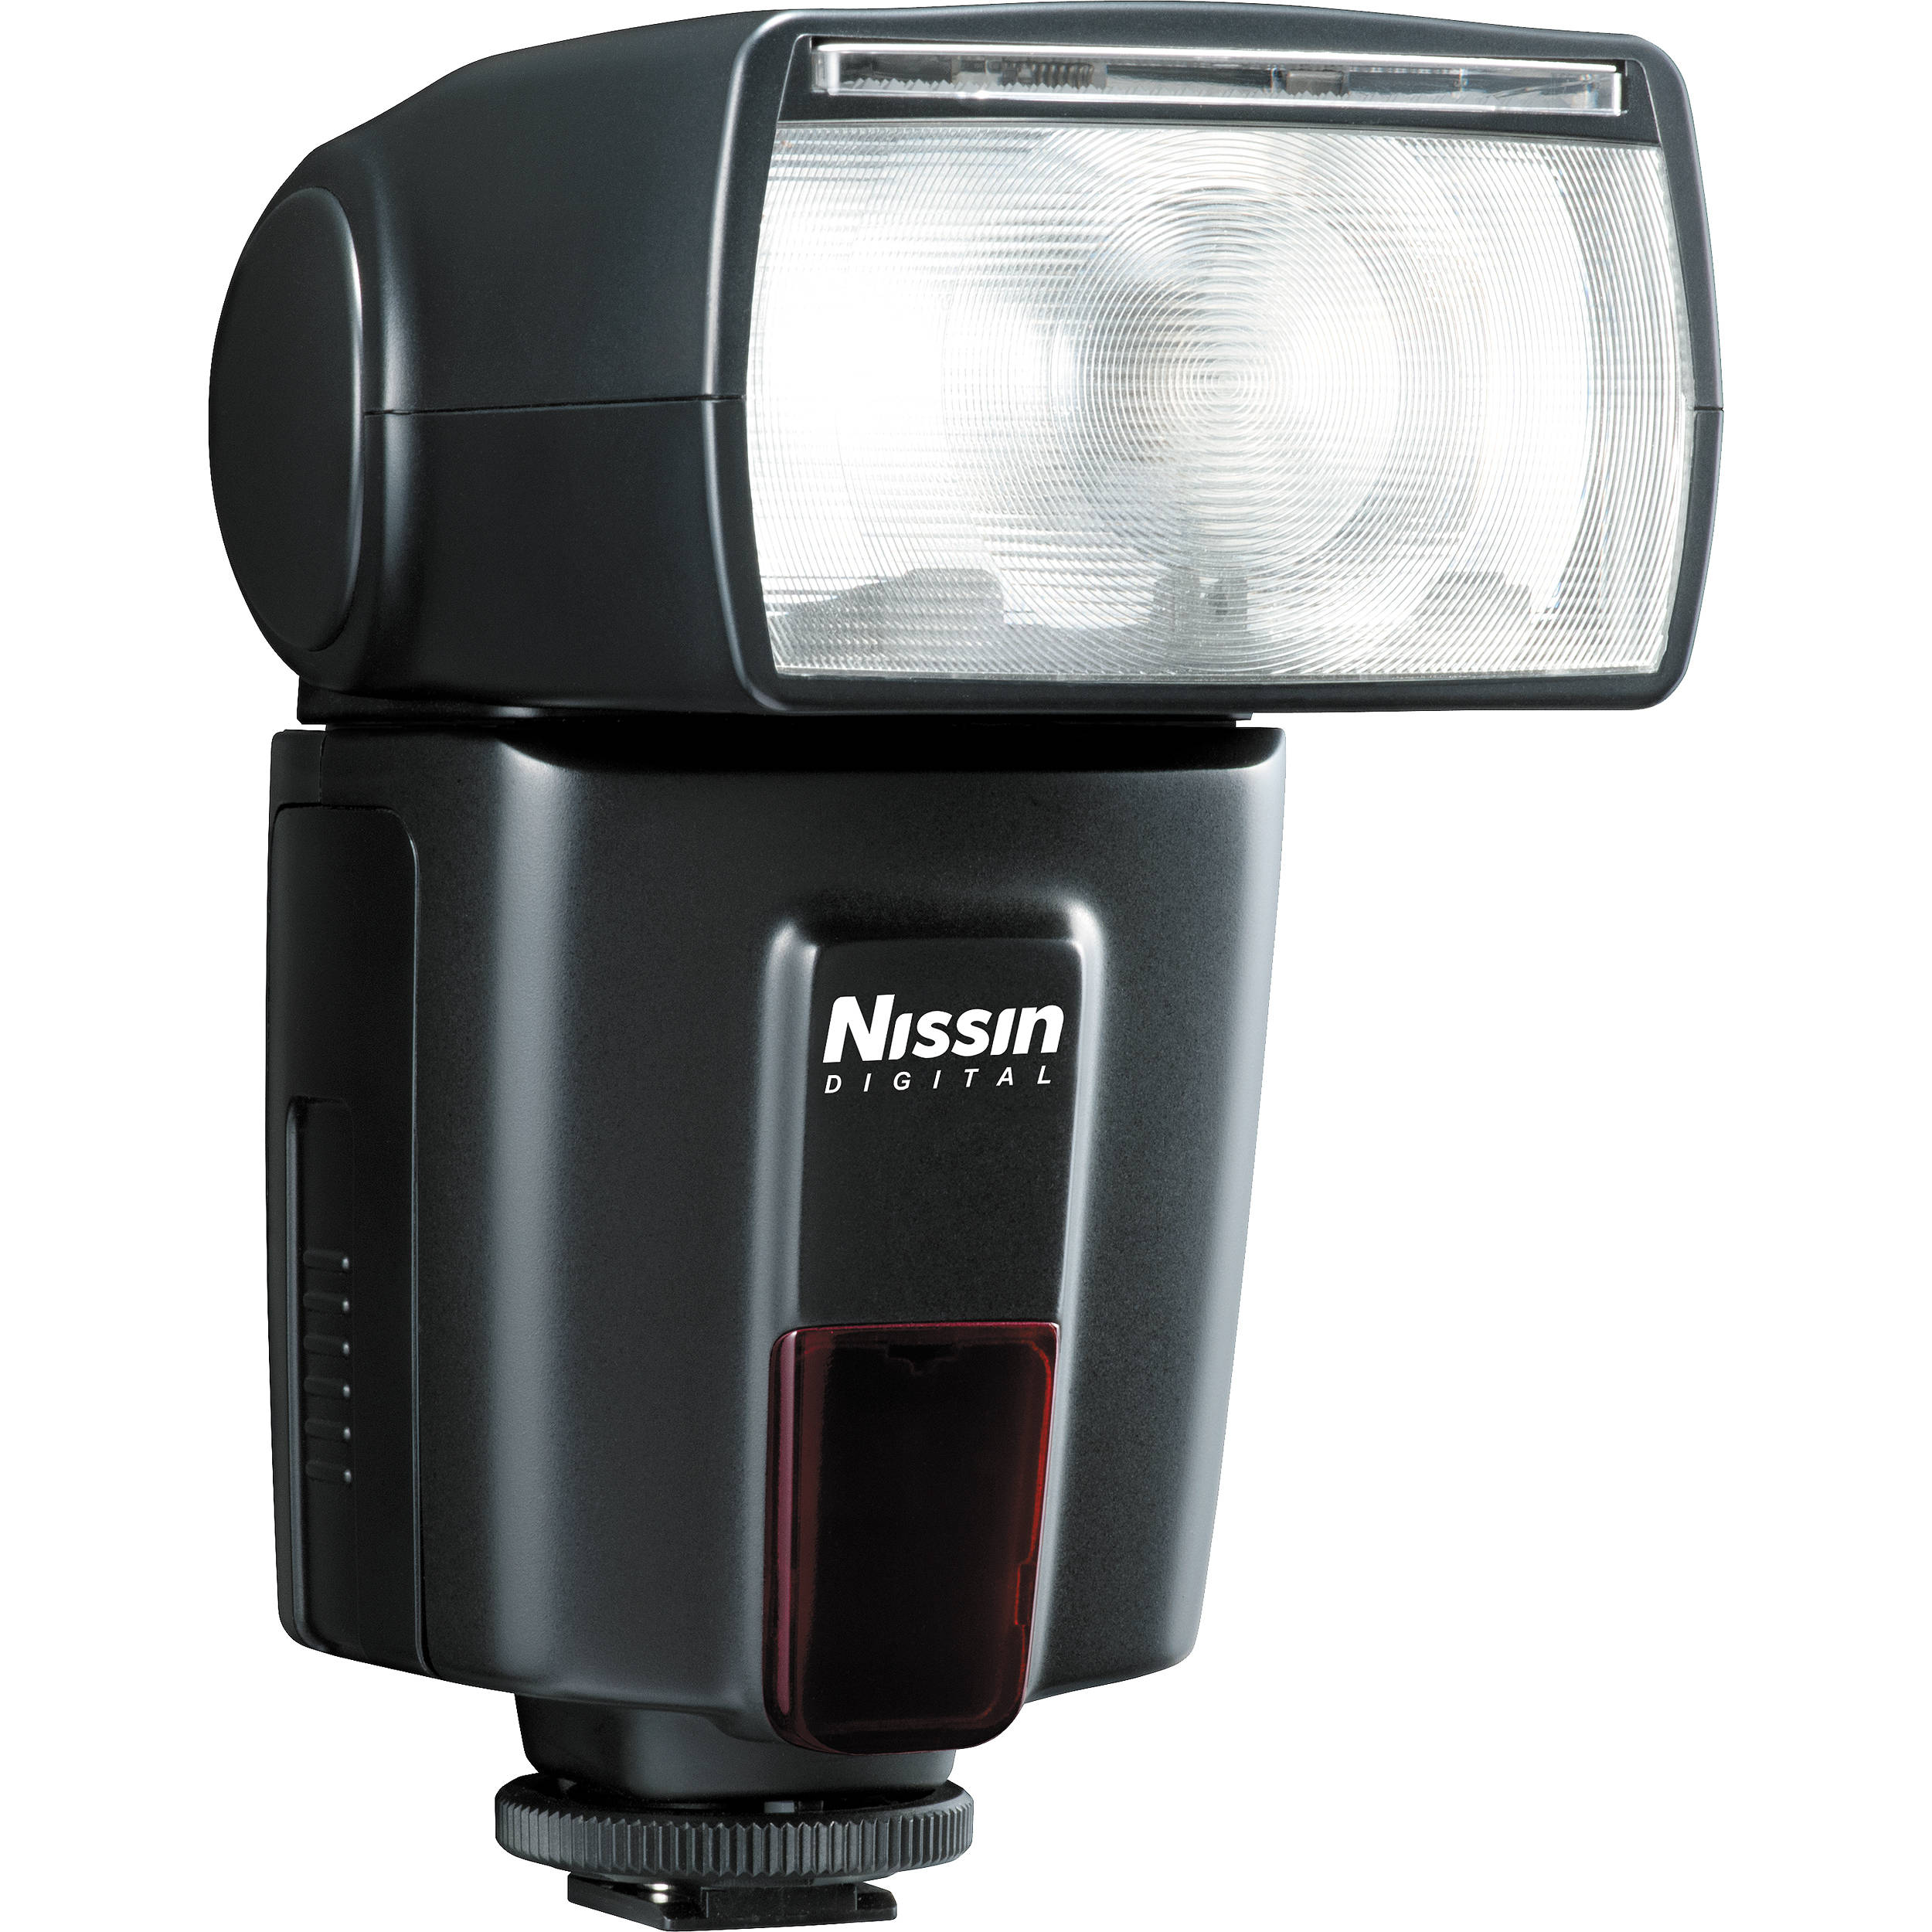 Nissin Di600 Flash - Canon